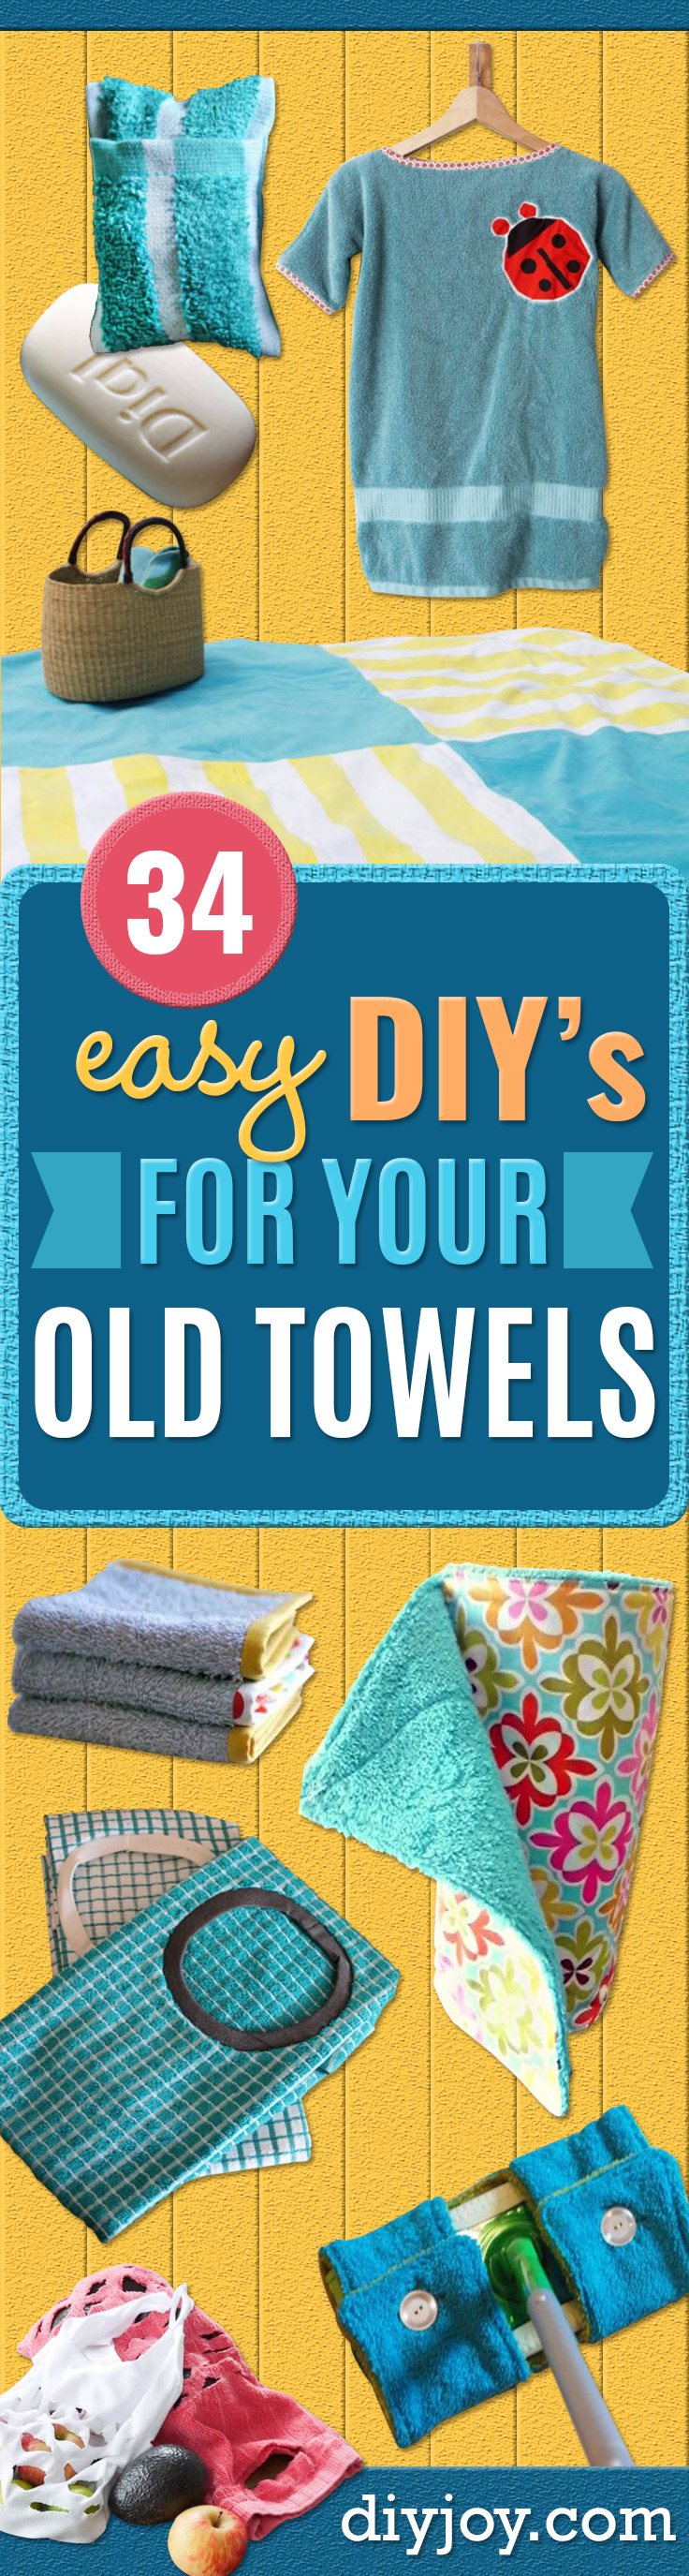 DIY Ideas With Old Towels - Cool Crafts To Make With An Old Towel - Cheap Do It Yourself Gifts and Home Decor on A Budget - Creative But Cheap Ideas for Decorating Your House and Room - Upcycle Those Towels Instead of Throwing Them Away! http://diyjoy.com/diy-ideas-old-towels